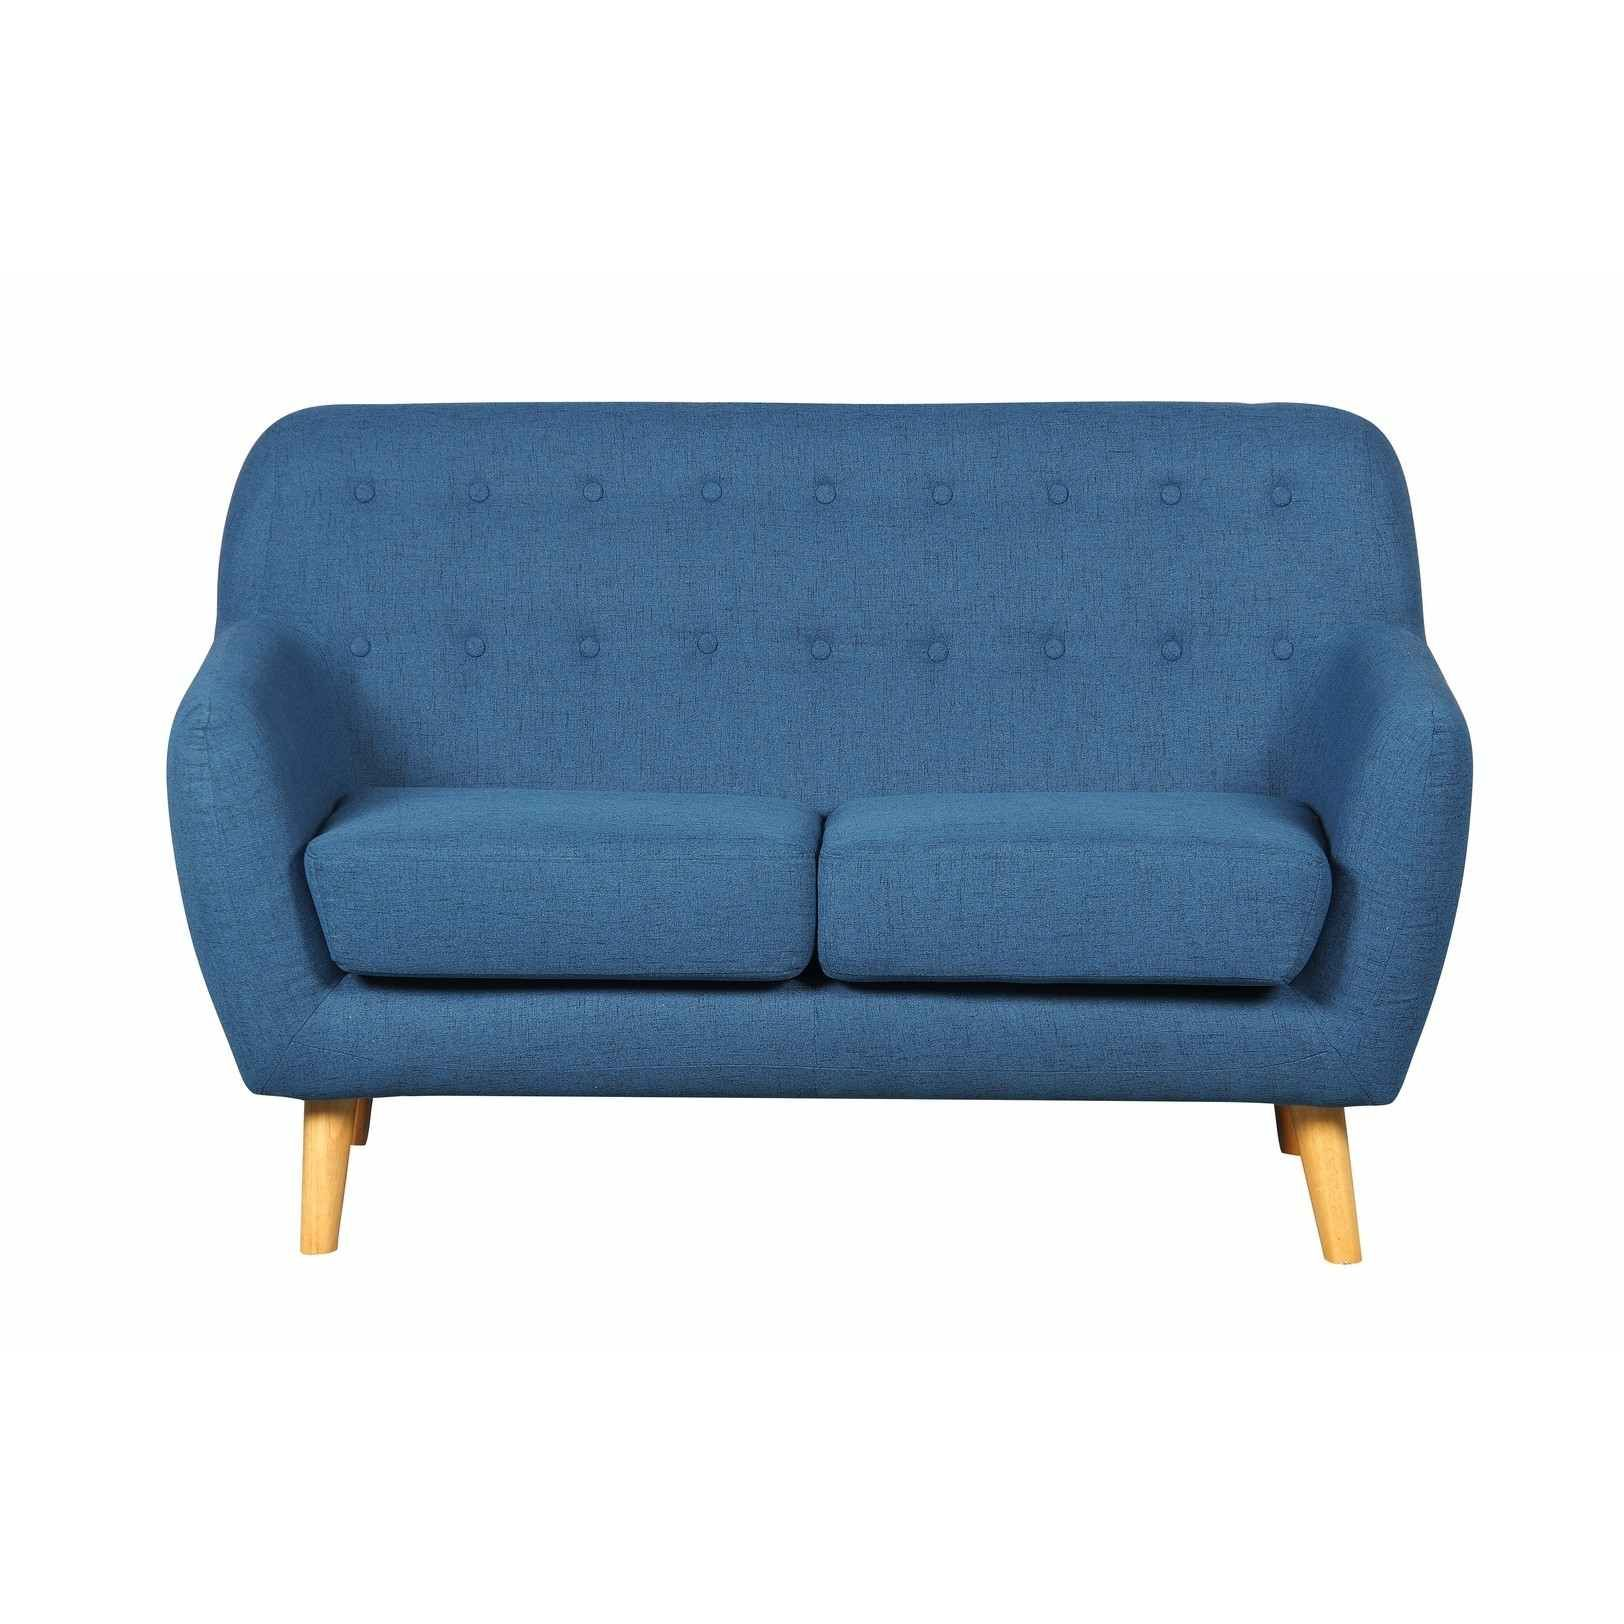 DECO IN PARIS - 1_canape Scandinave 2 Places Tissu Bleu Viky Viky 2pl Bleu